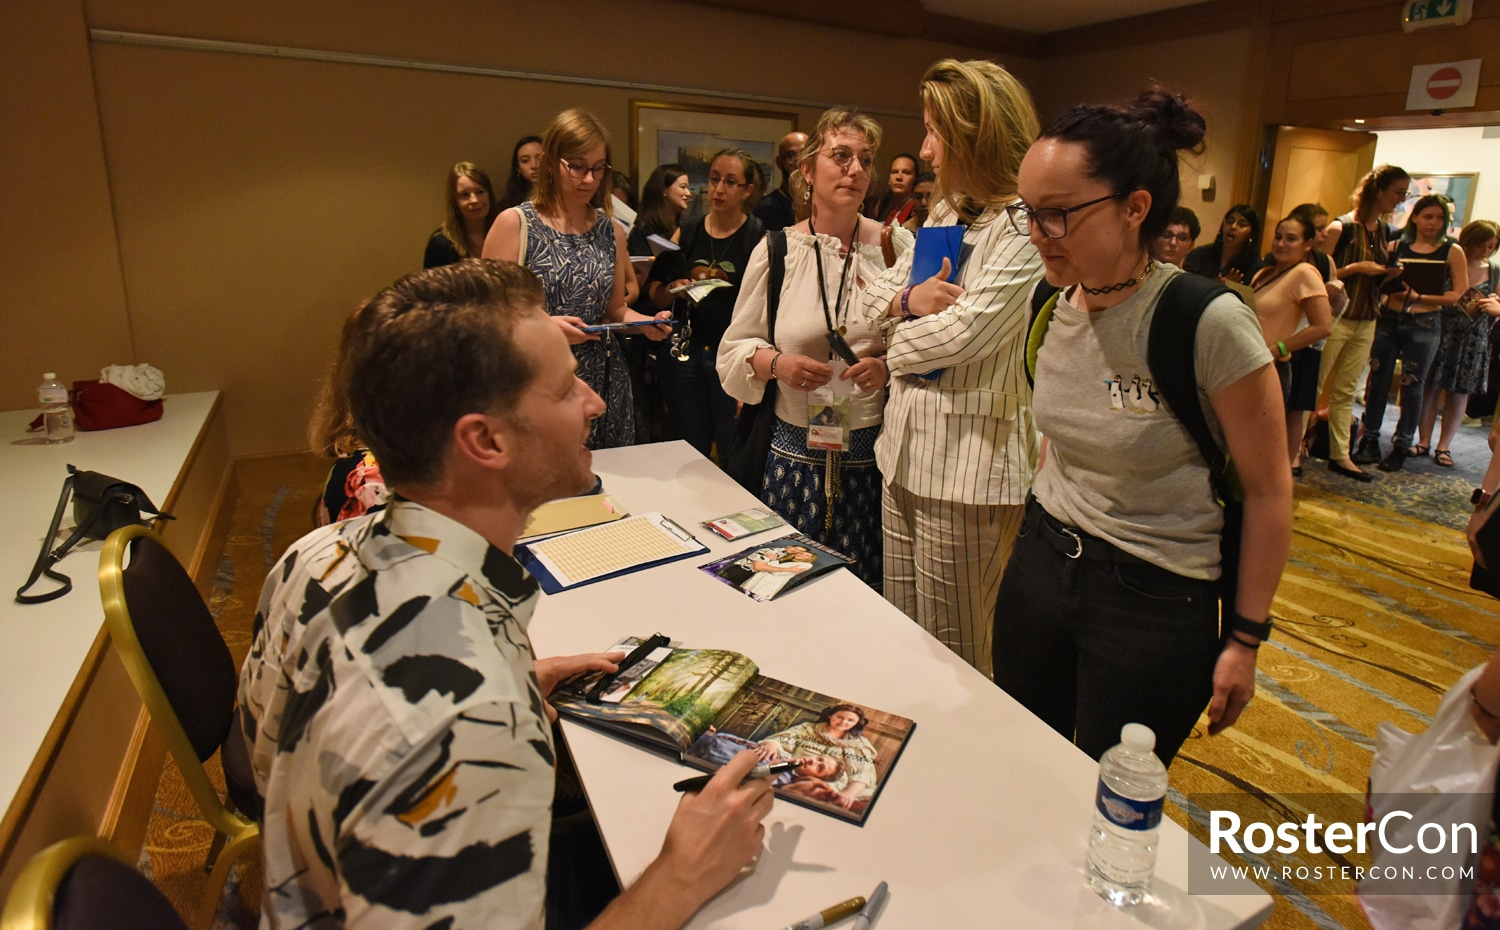 Josh Dallas - The Happy Ending Convention 3 - Once Upon A Time